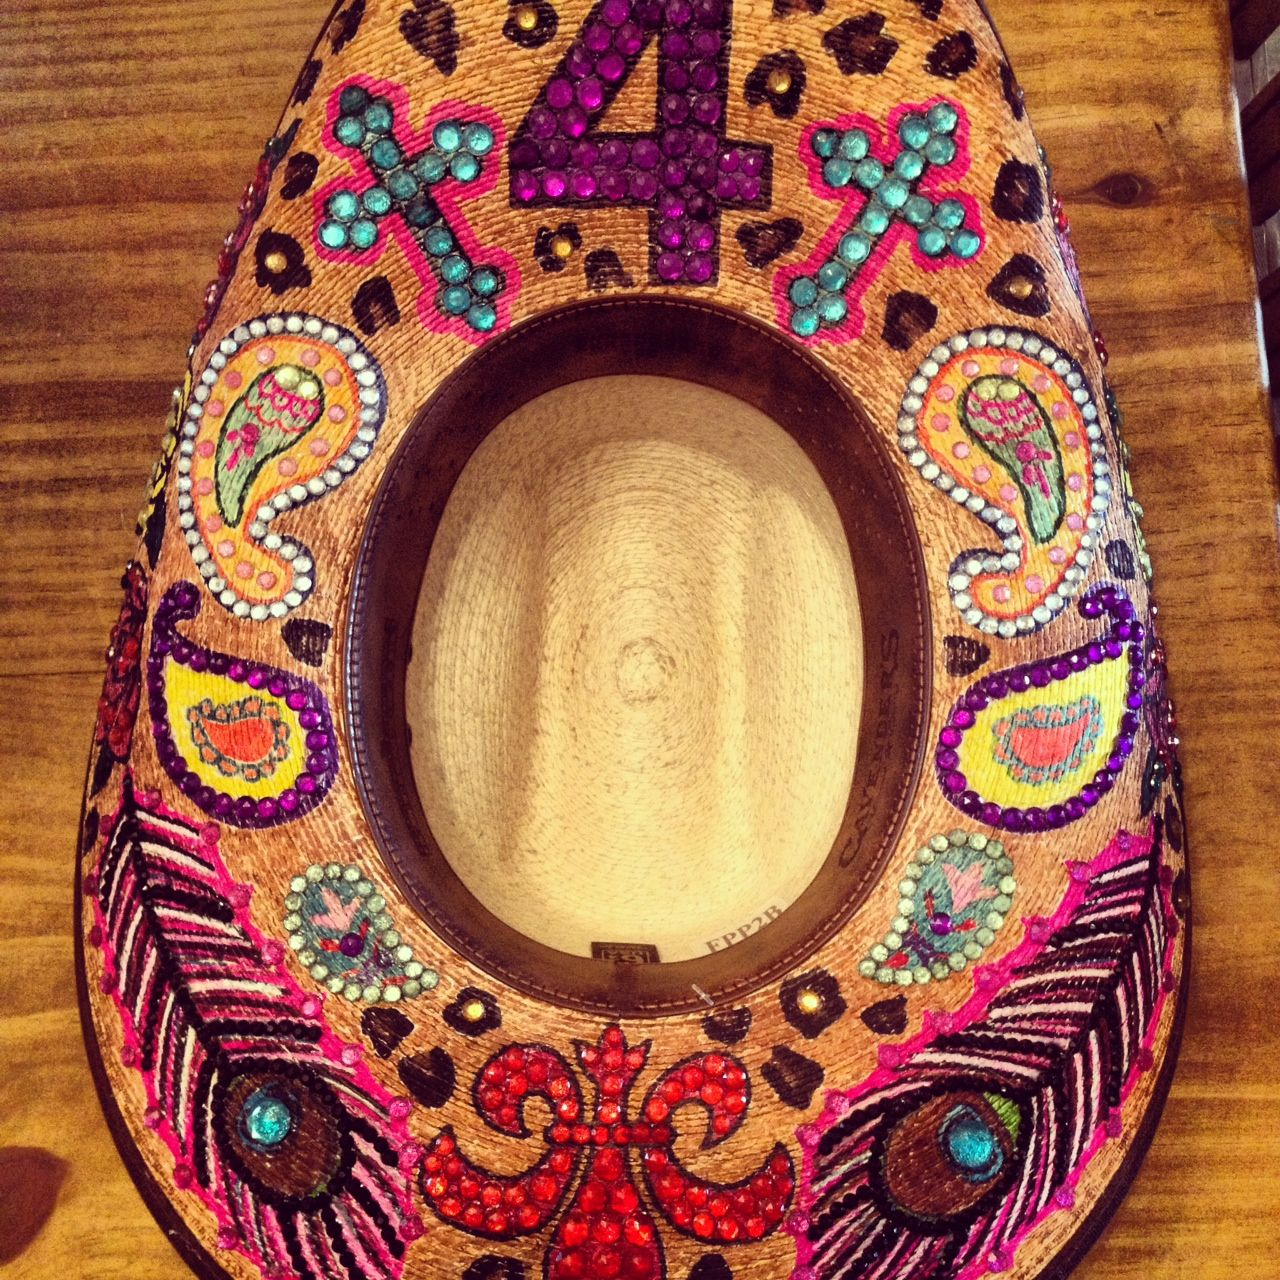 Glam Custom Hats! Hand painted for the cowgirl in us all! Find them on FB. 1dac282b9179